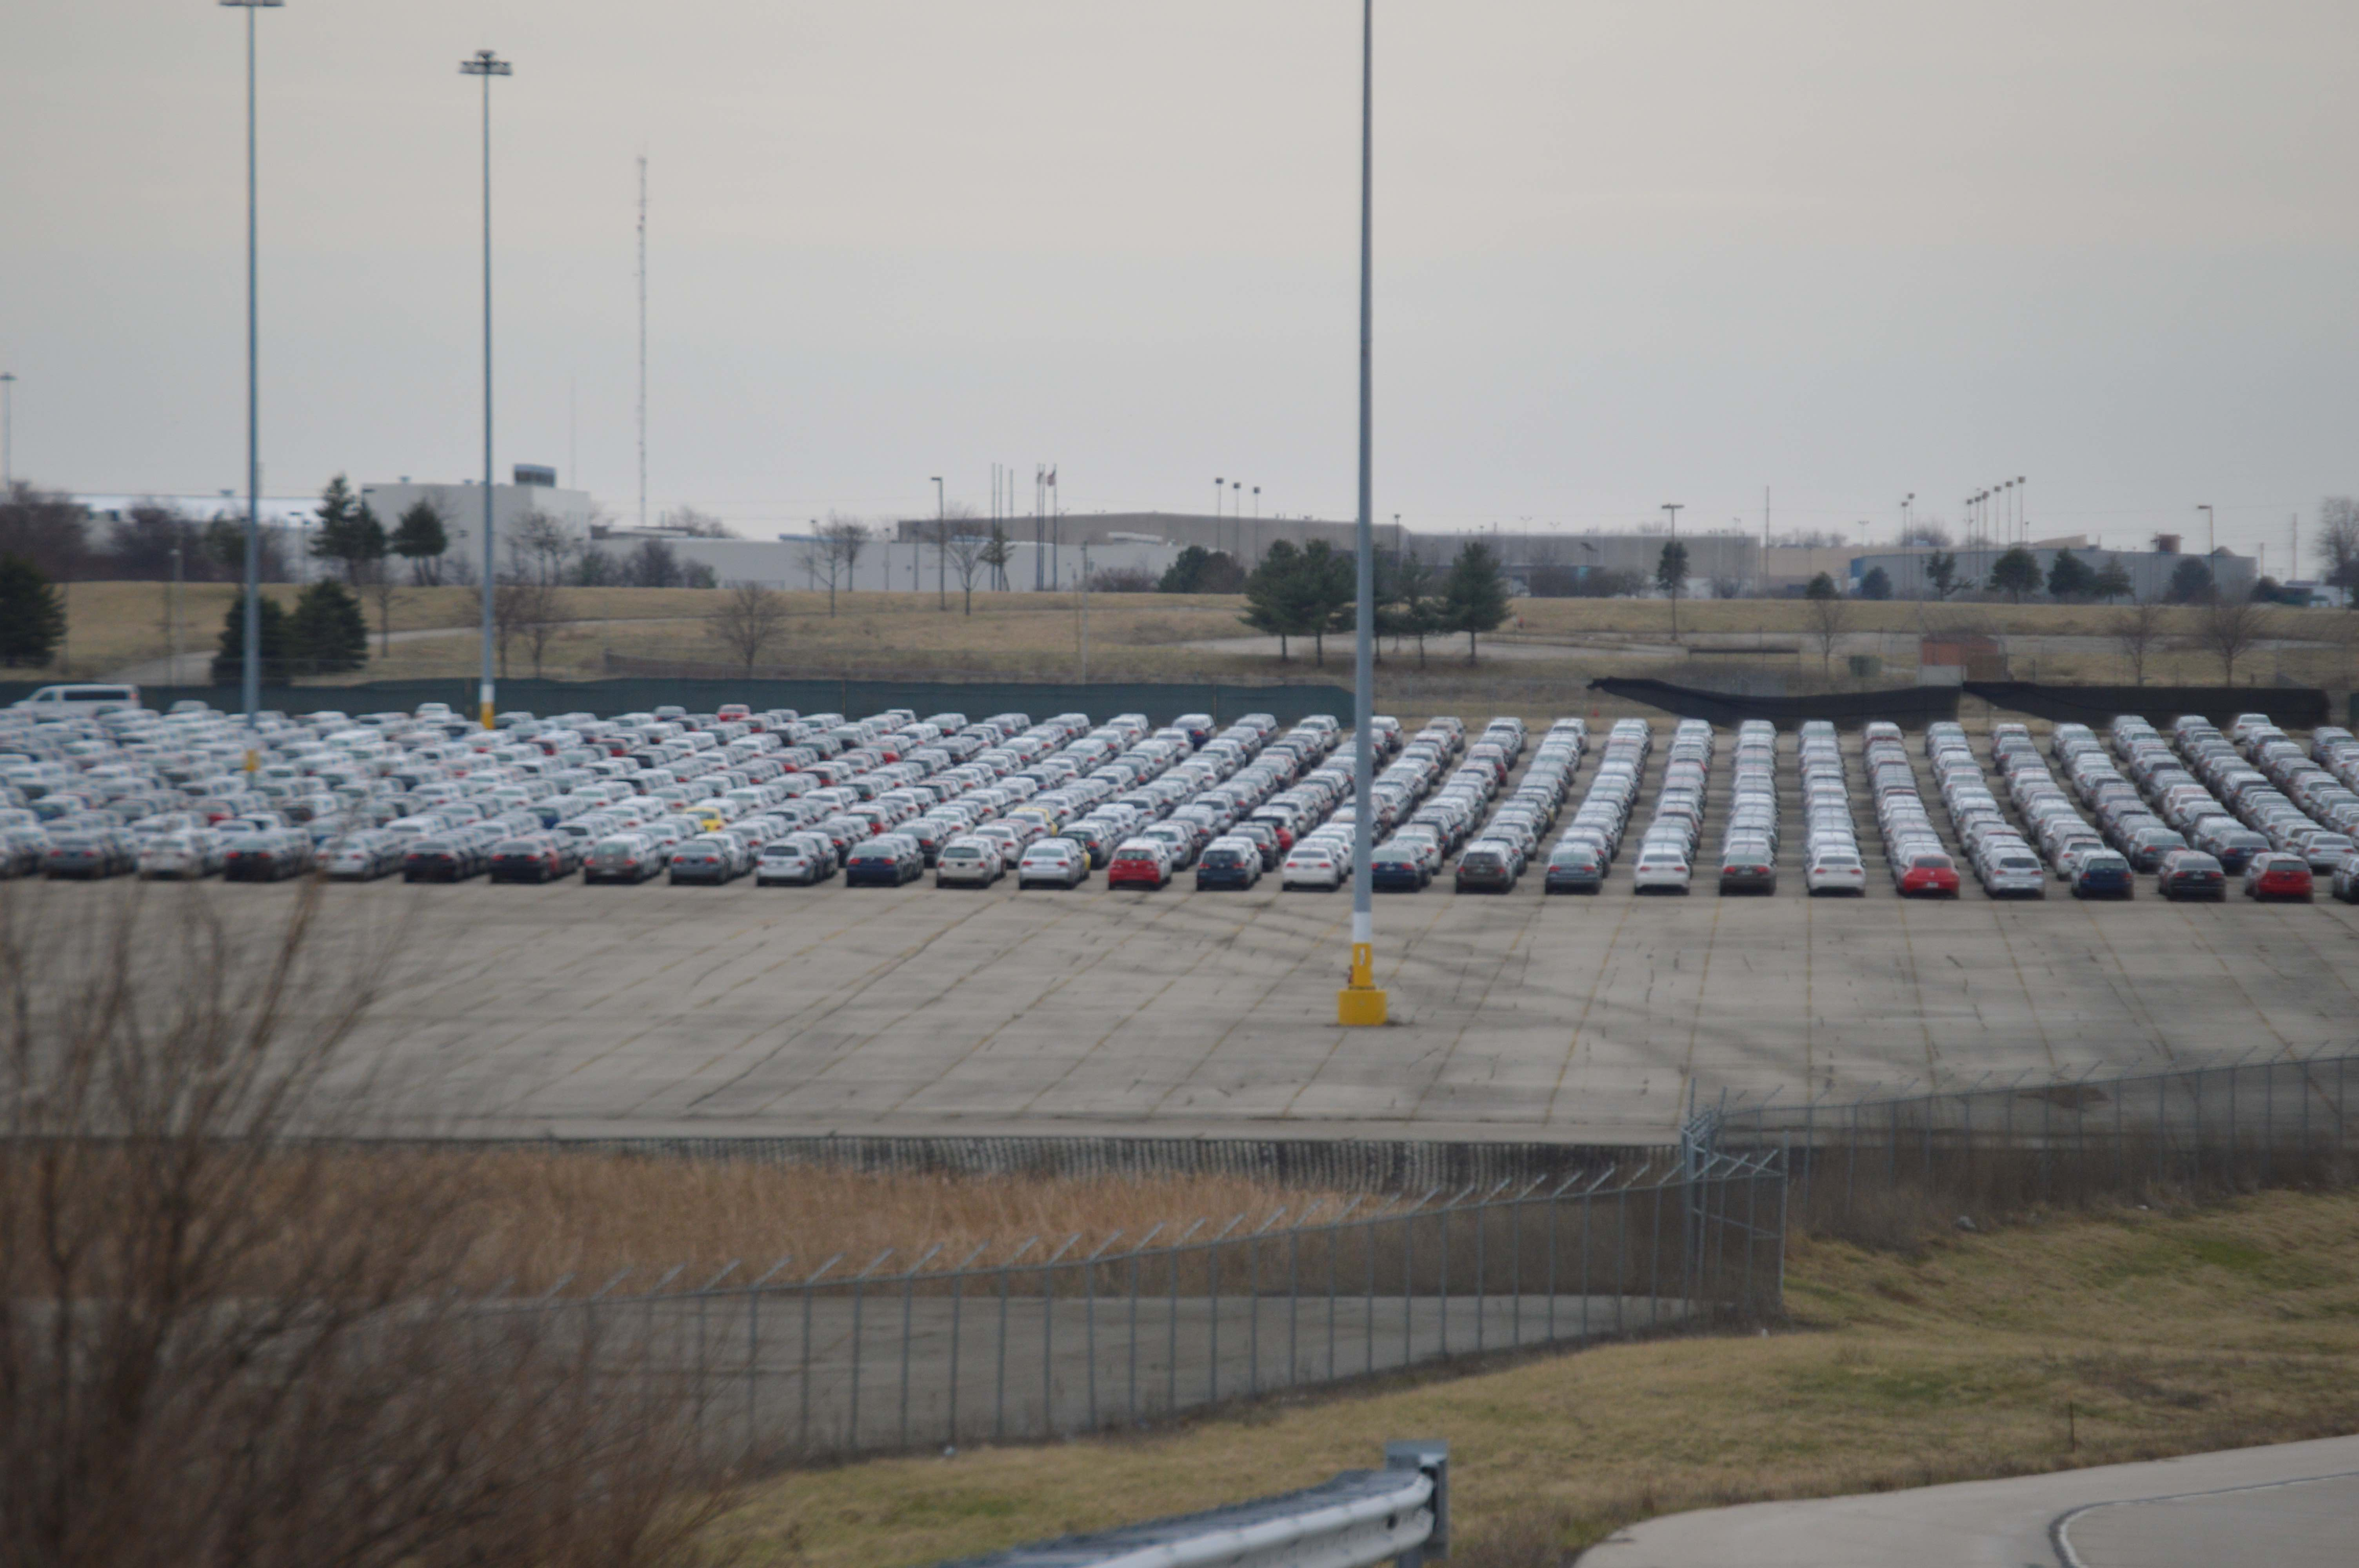 The VWs are lined up very neatly as Vascor logistics makes use of the large lots